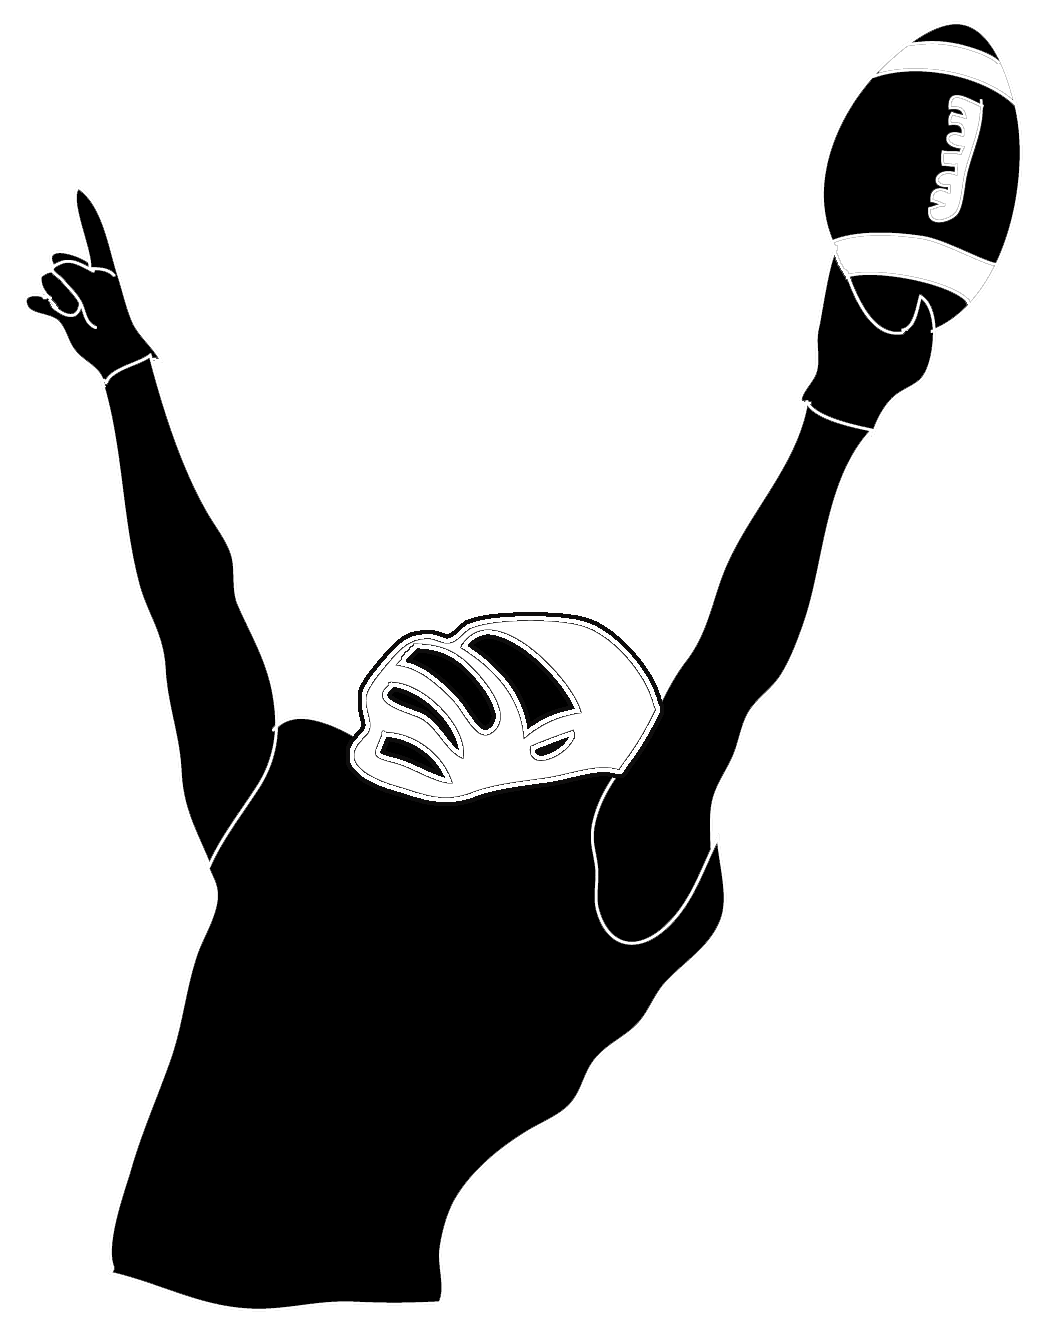 Clipart volleyball silhouette. Victory football player pinterest